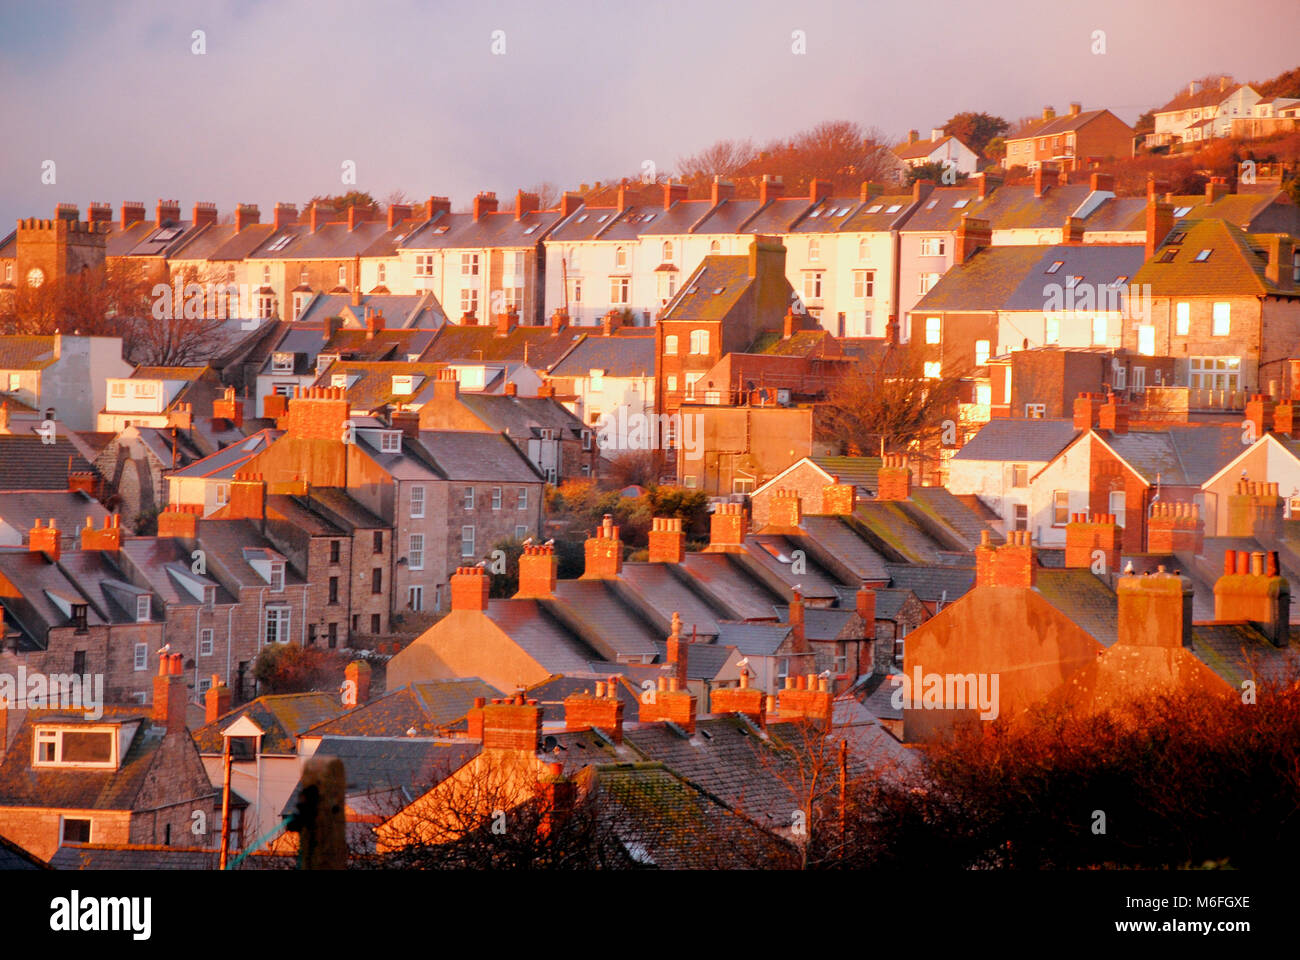 Portland, Dorset. 3rd March 2018 - A glorious sunset bathes the Portland village of Fortuneswell in a peachy glow - Stock Image